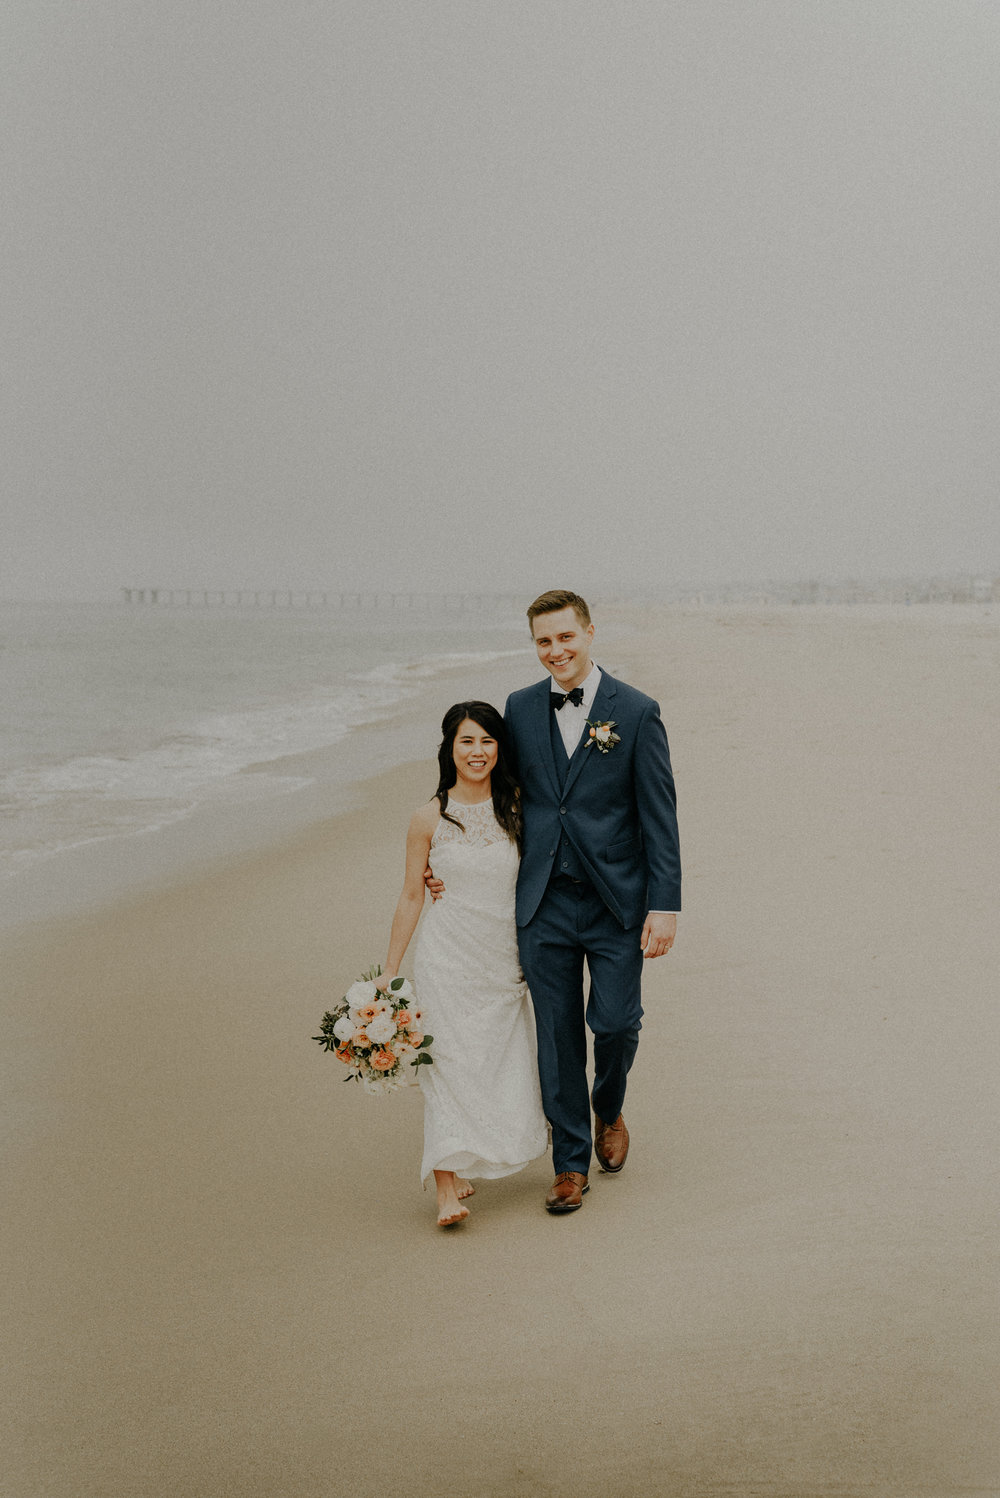 Los Angeles Wedding Photographers - The Chart House Wedding - Isaiah + Taylor Photography-101.jpg